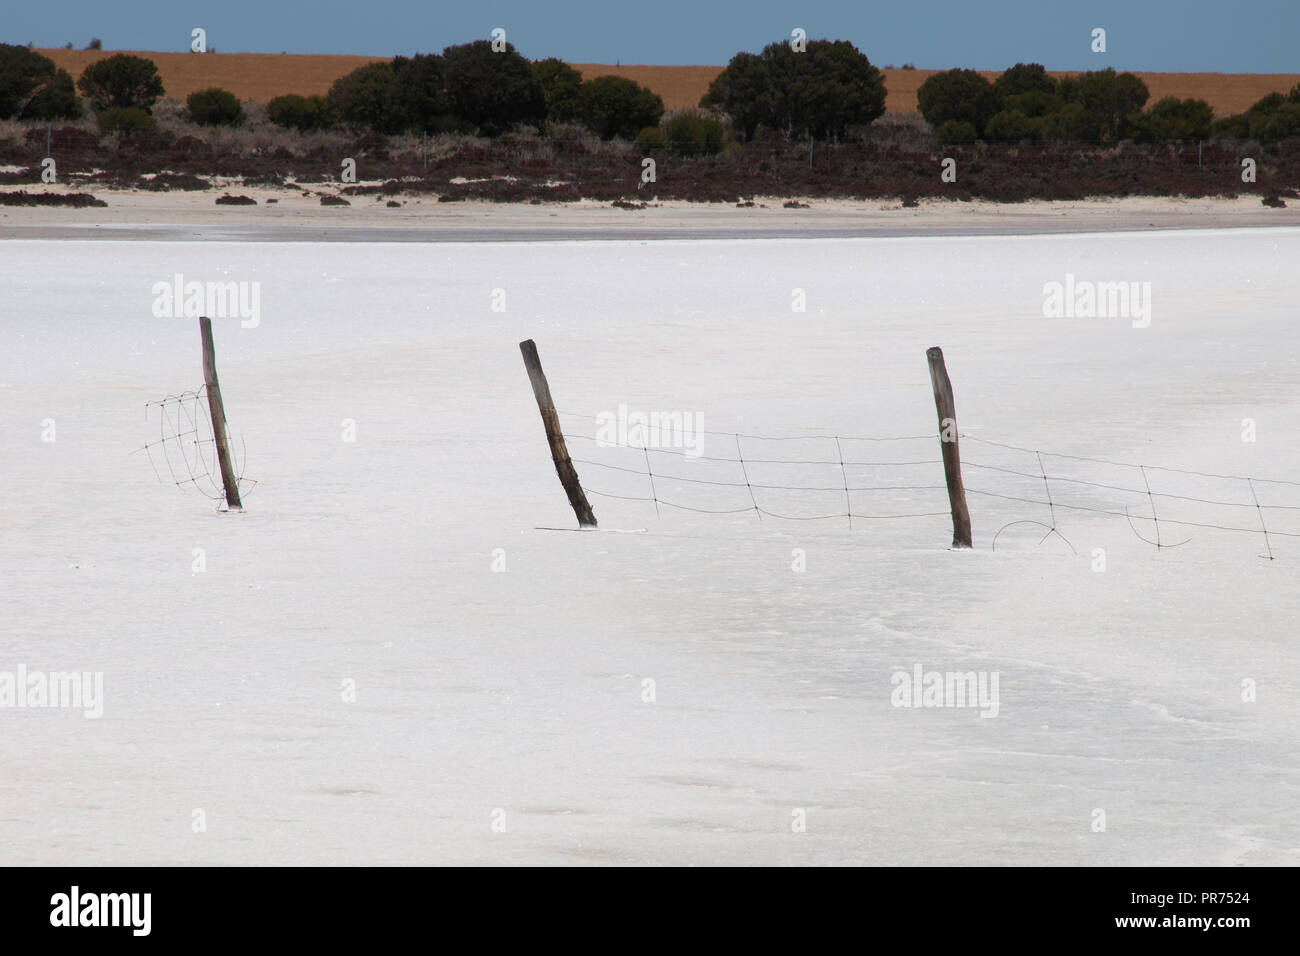 Chinocup Nature Reserve Western Australia, line of wooden fence posts crossing dry salt lake with wheat crop in background - Stock Image